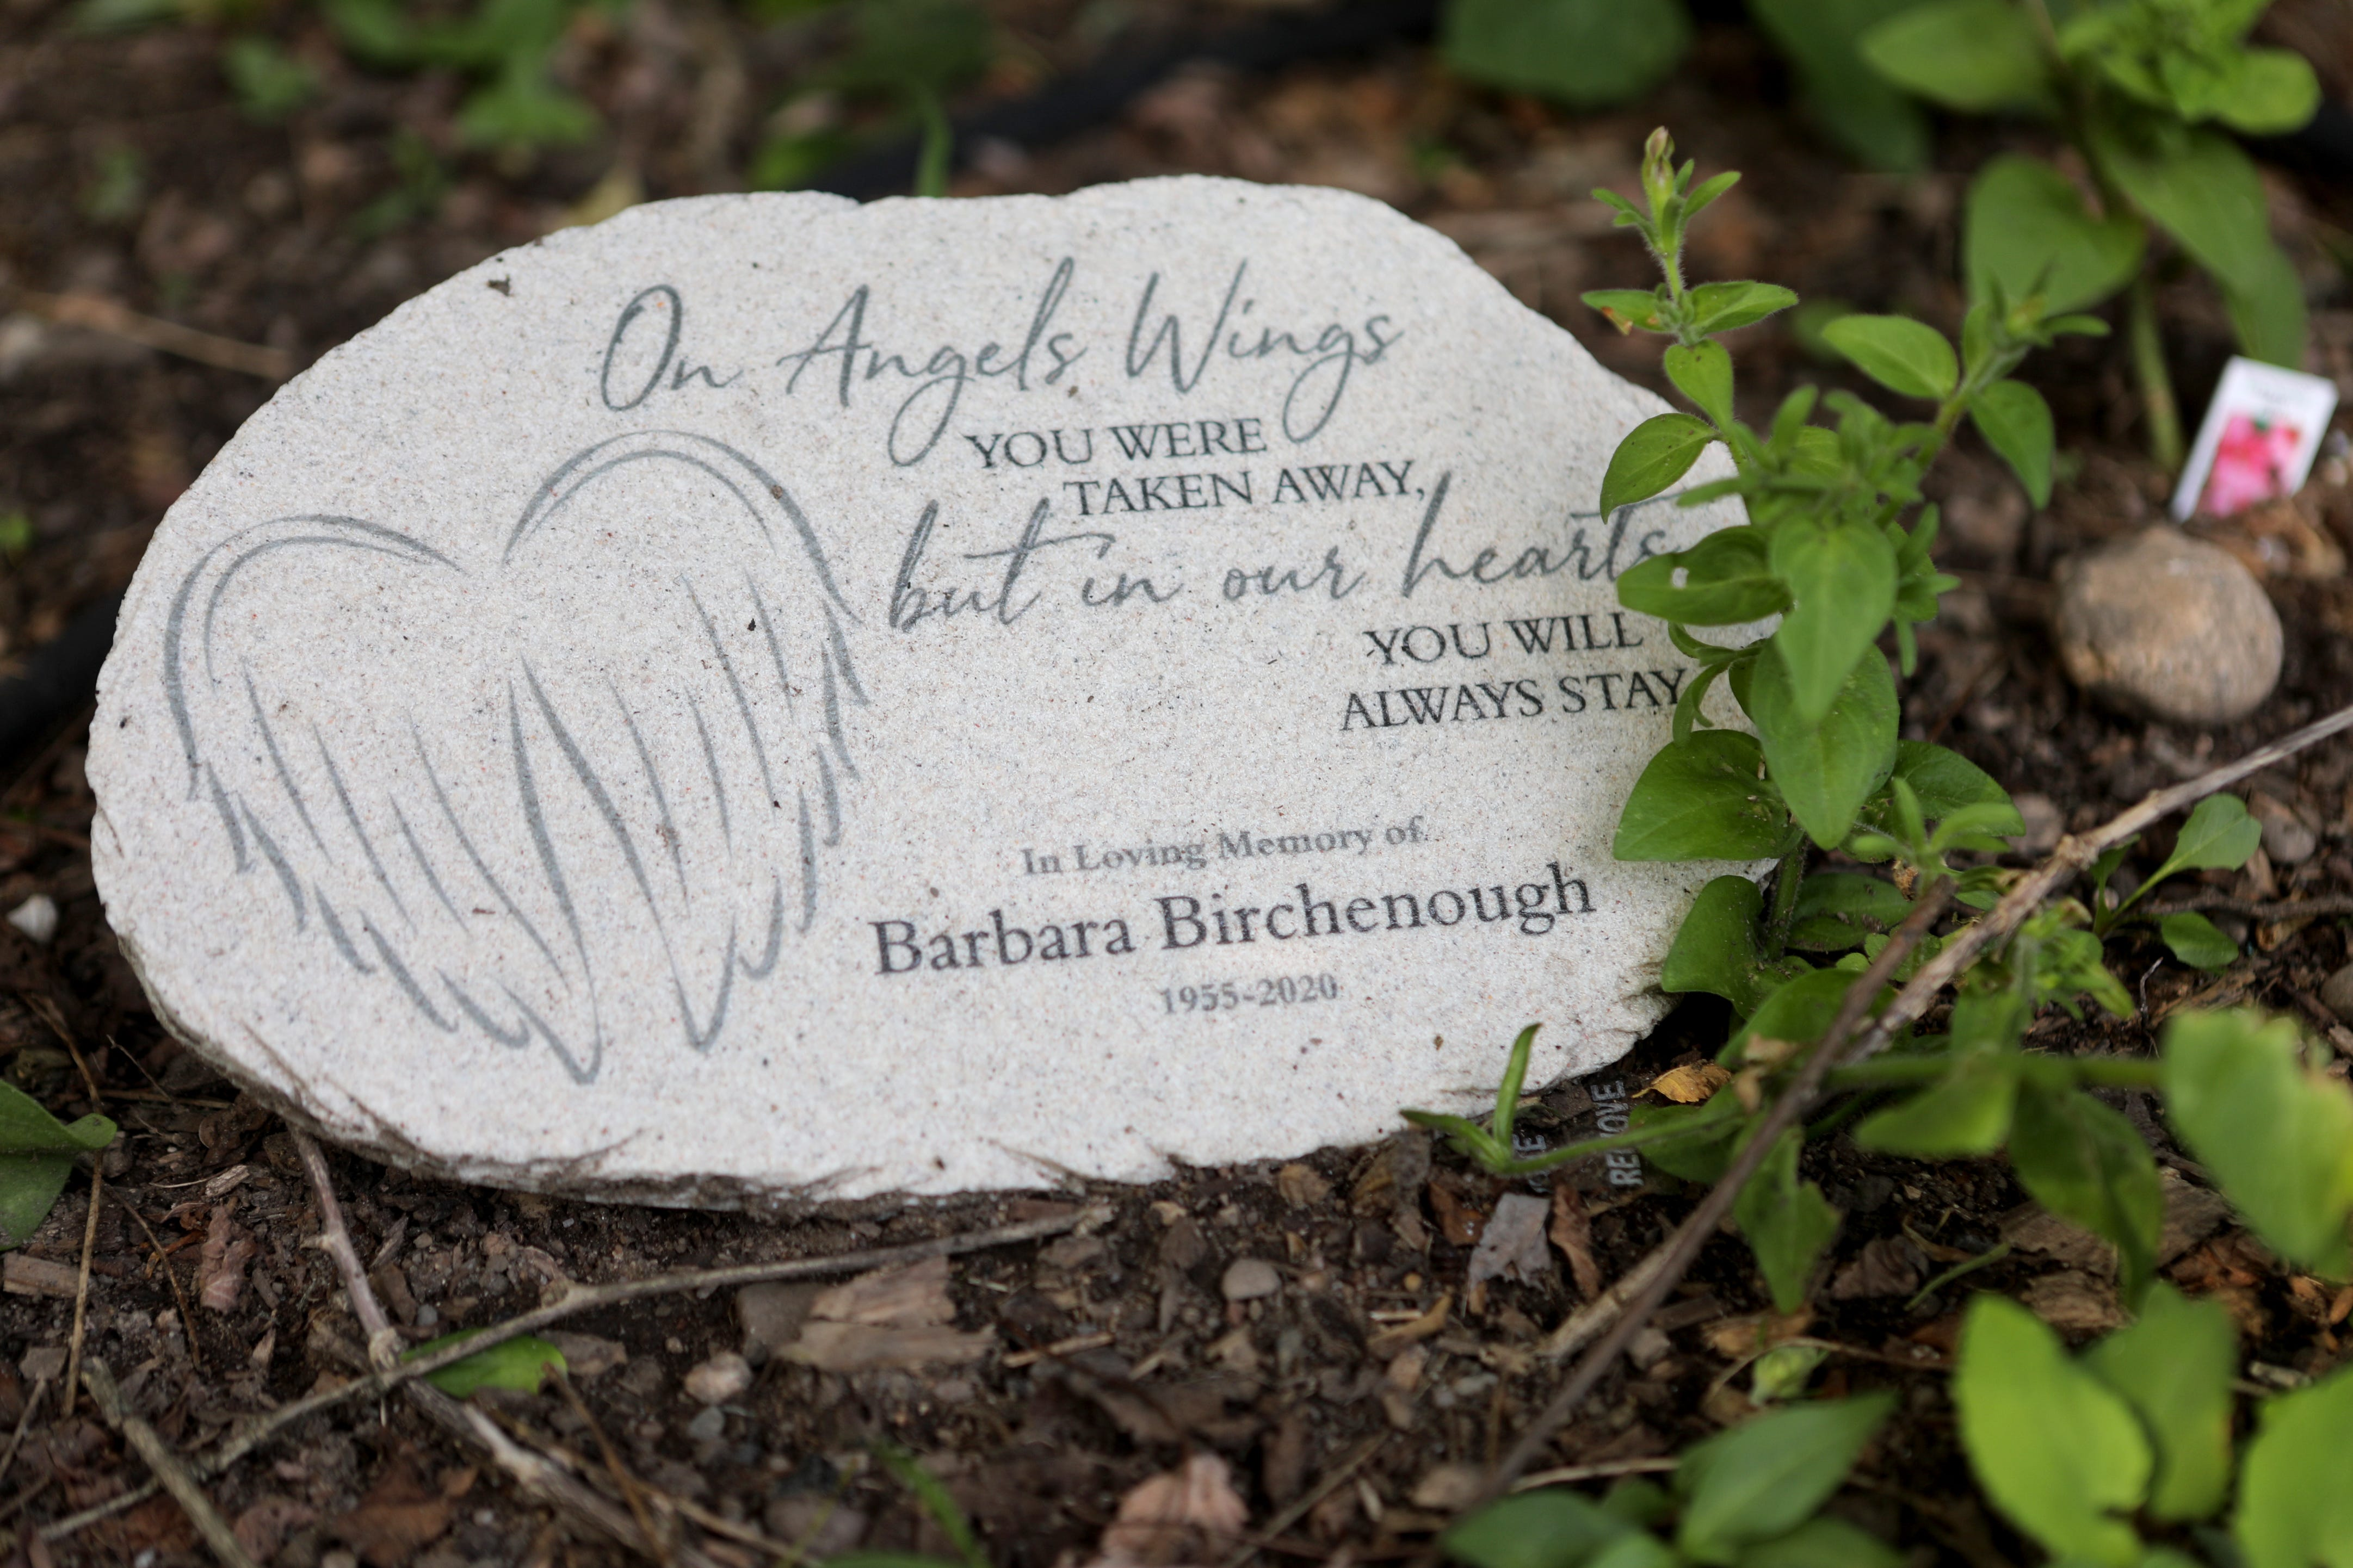 A stone is shown in the Birchenough's Midland Park garden, remembering Barbara. Wednesday August 5, 2020